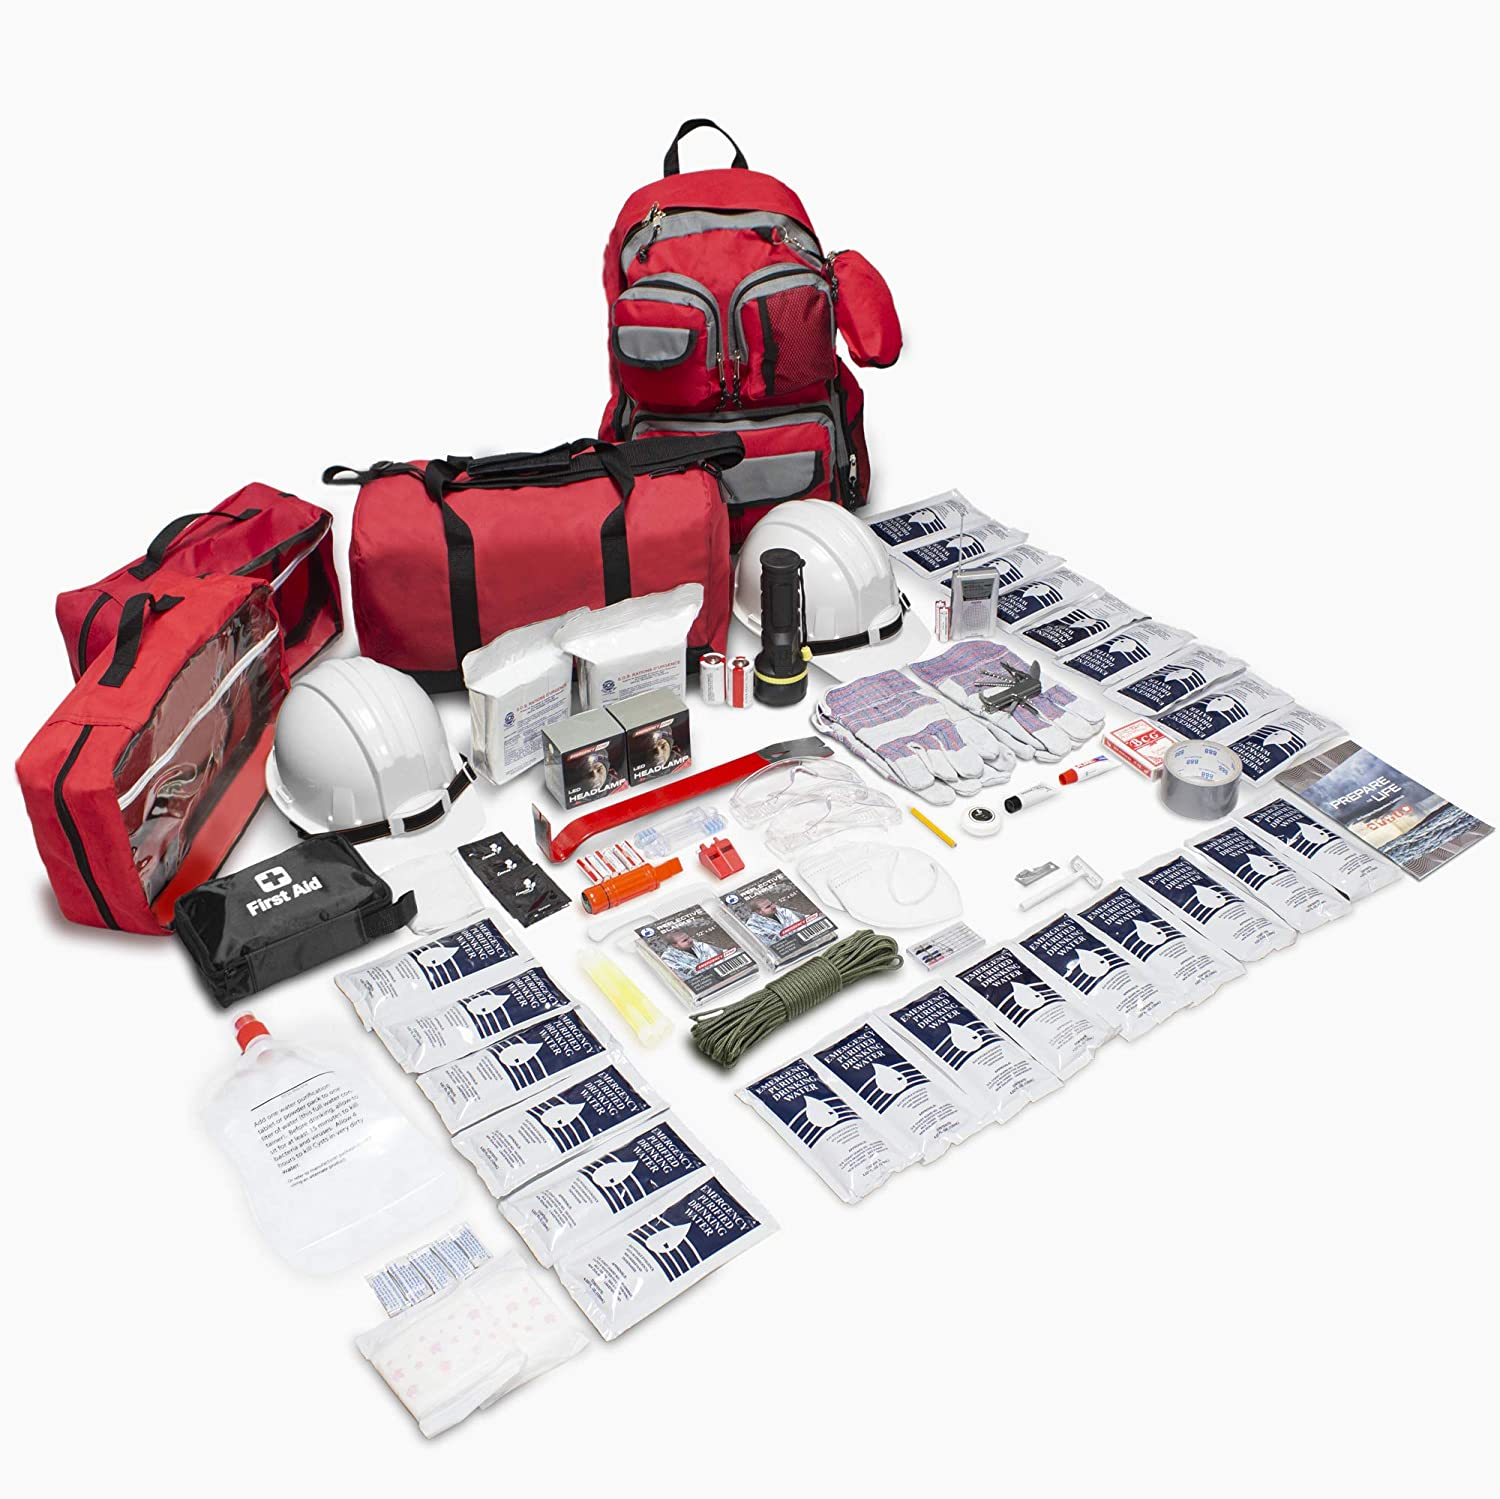 Emergency Zone Earthquake 72 Hour Survival Kit Go Bag, 2 Person Emergency Disaster Kit, Be Prepared for The Big ONE. 2 Person Basic, 2 Person Deluxe, Personal Evacuation Safety Kit Available 2 Person Basic Emergency Disaster Kit